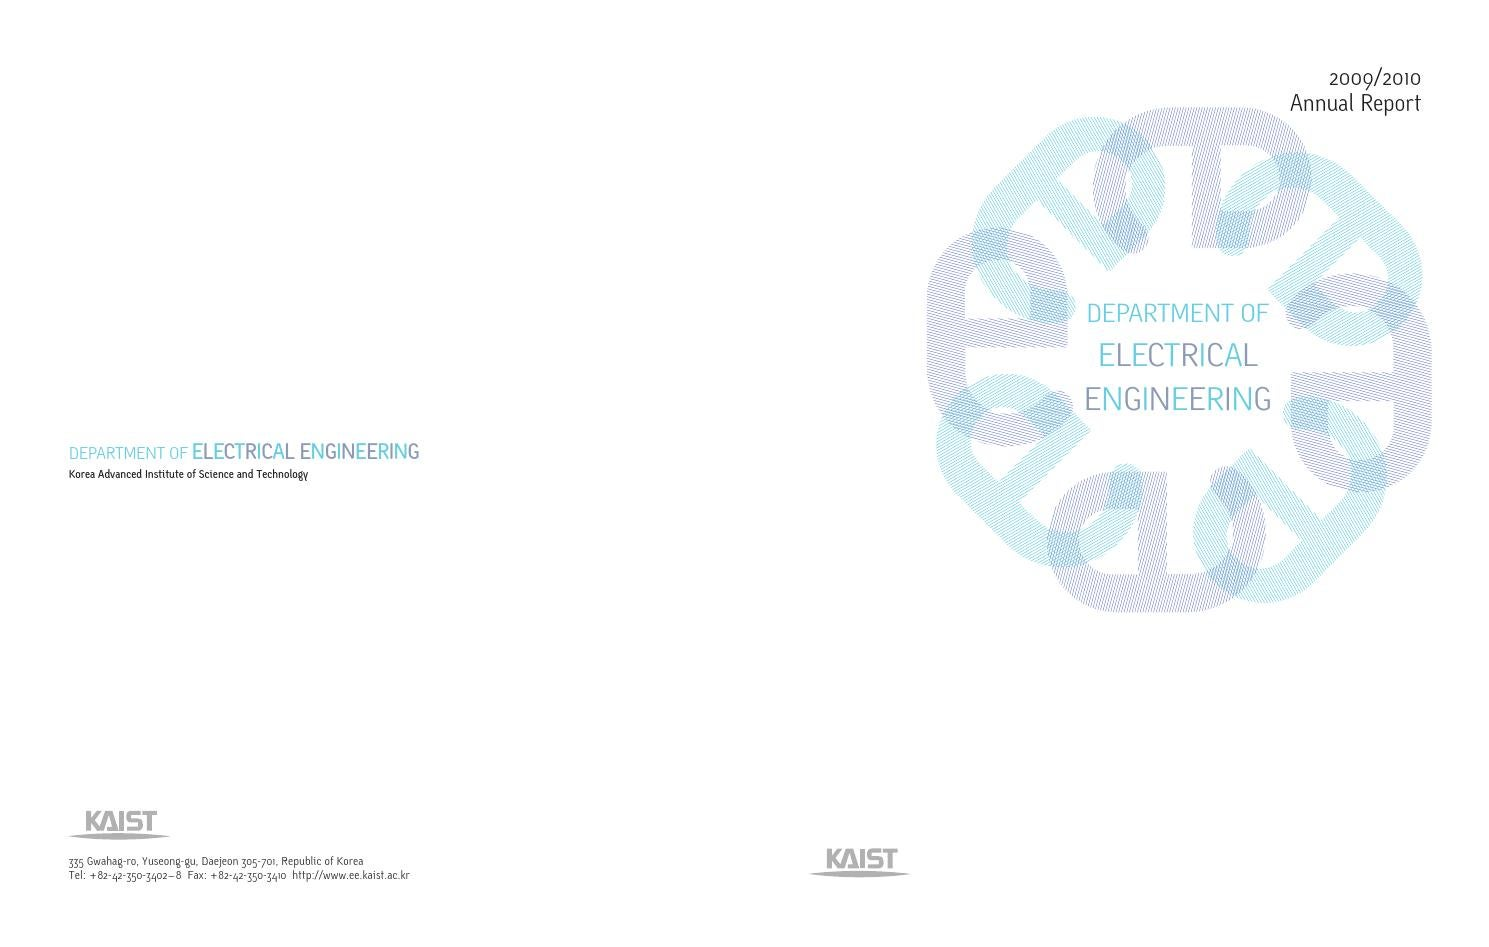 2009/2010 Annual Report by KAIST EE - issuu